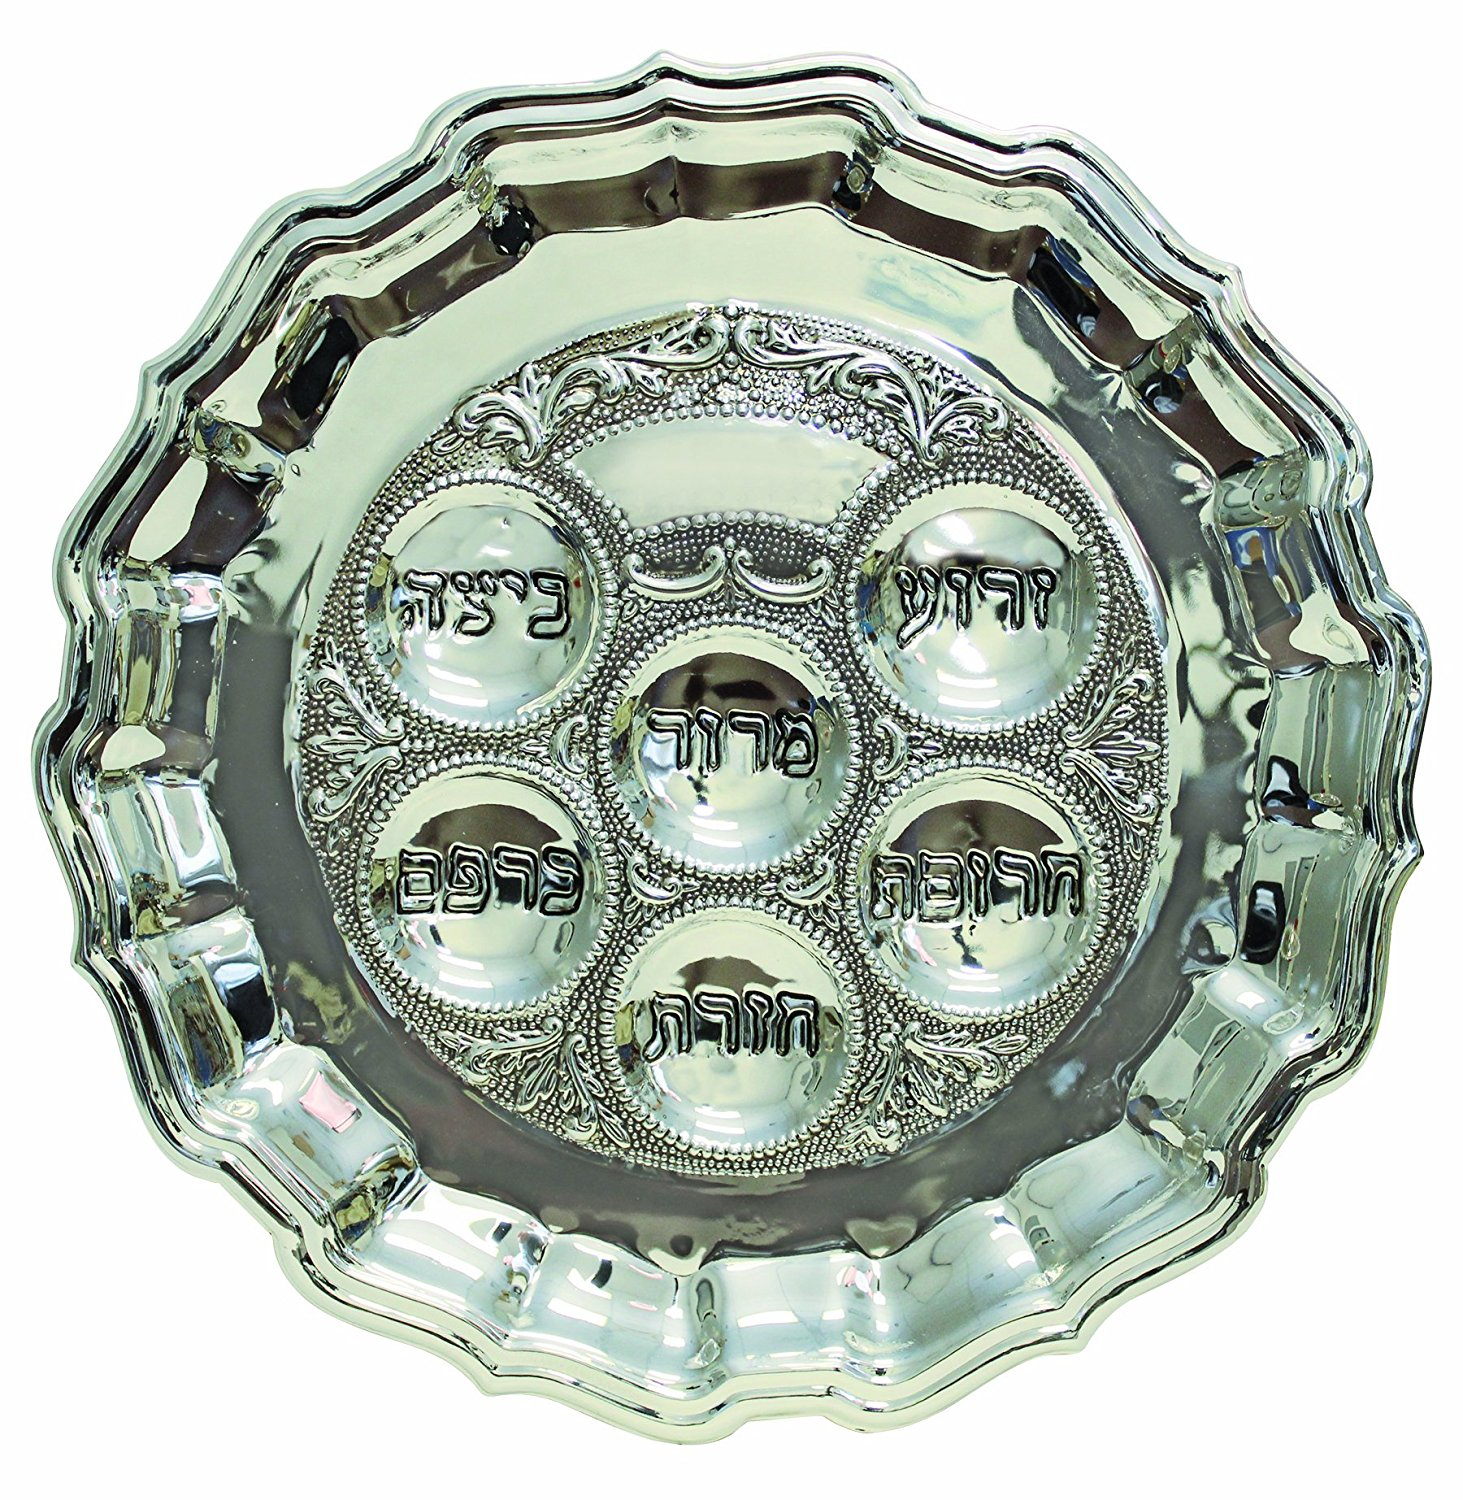 Passover Seder Plate, 12-Inch, Silver Plated SPTF1208BL1